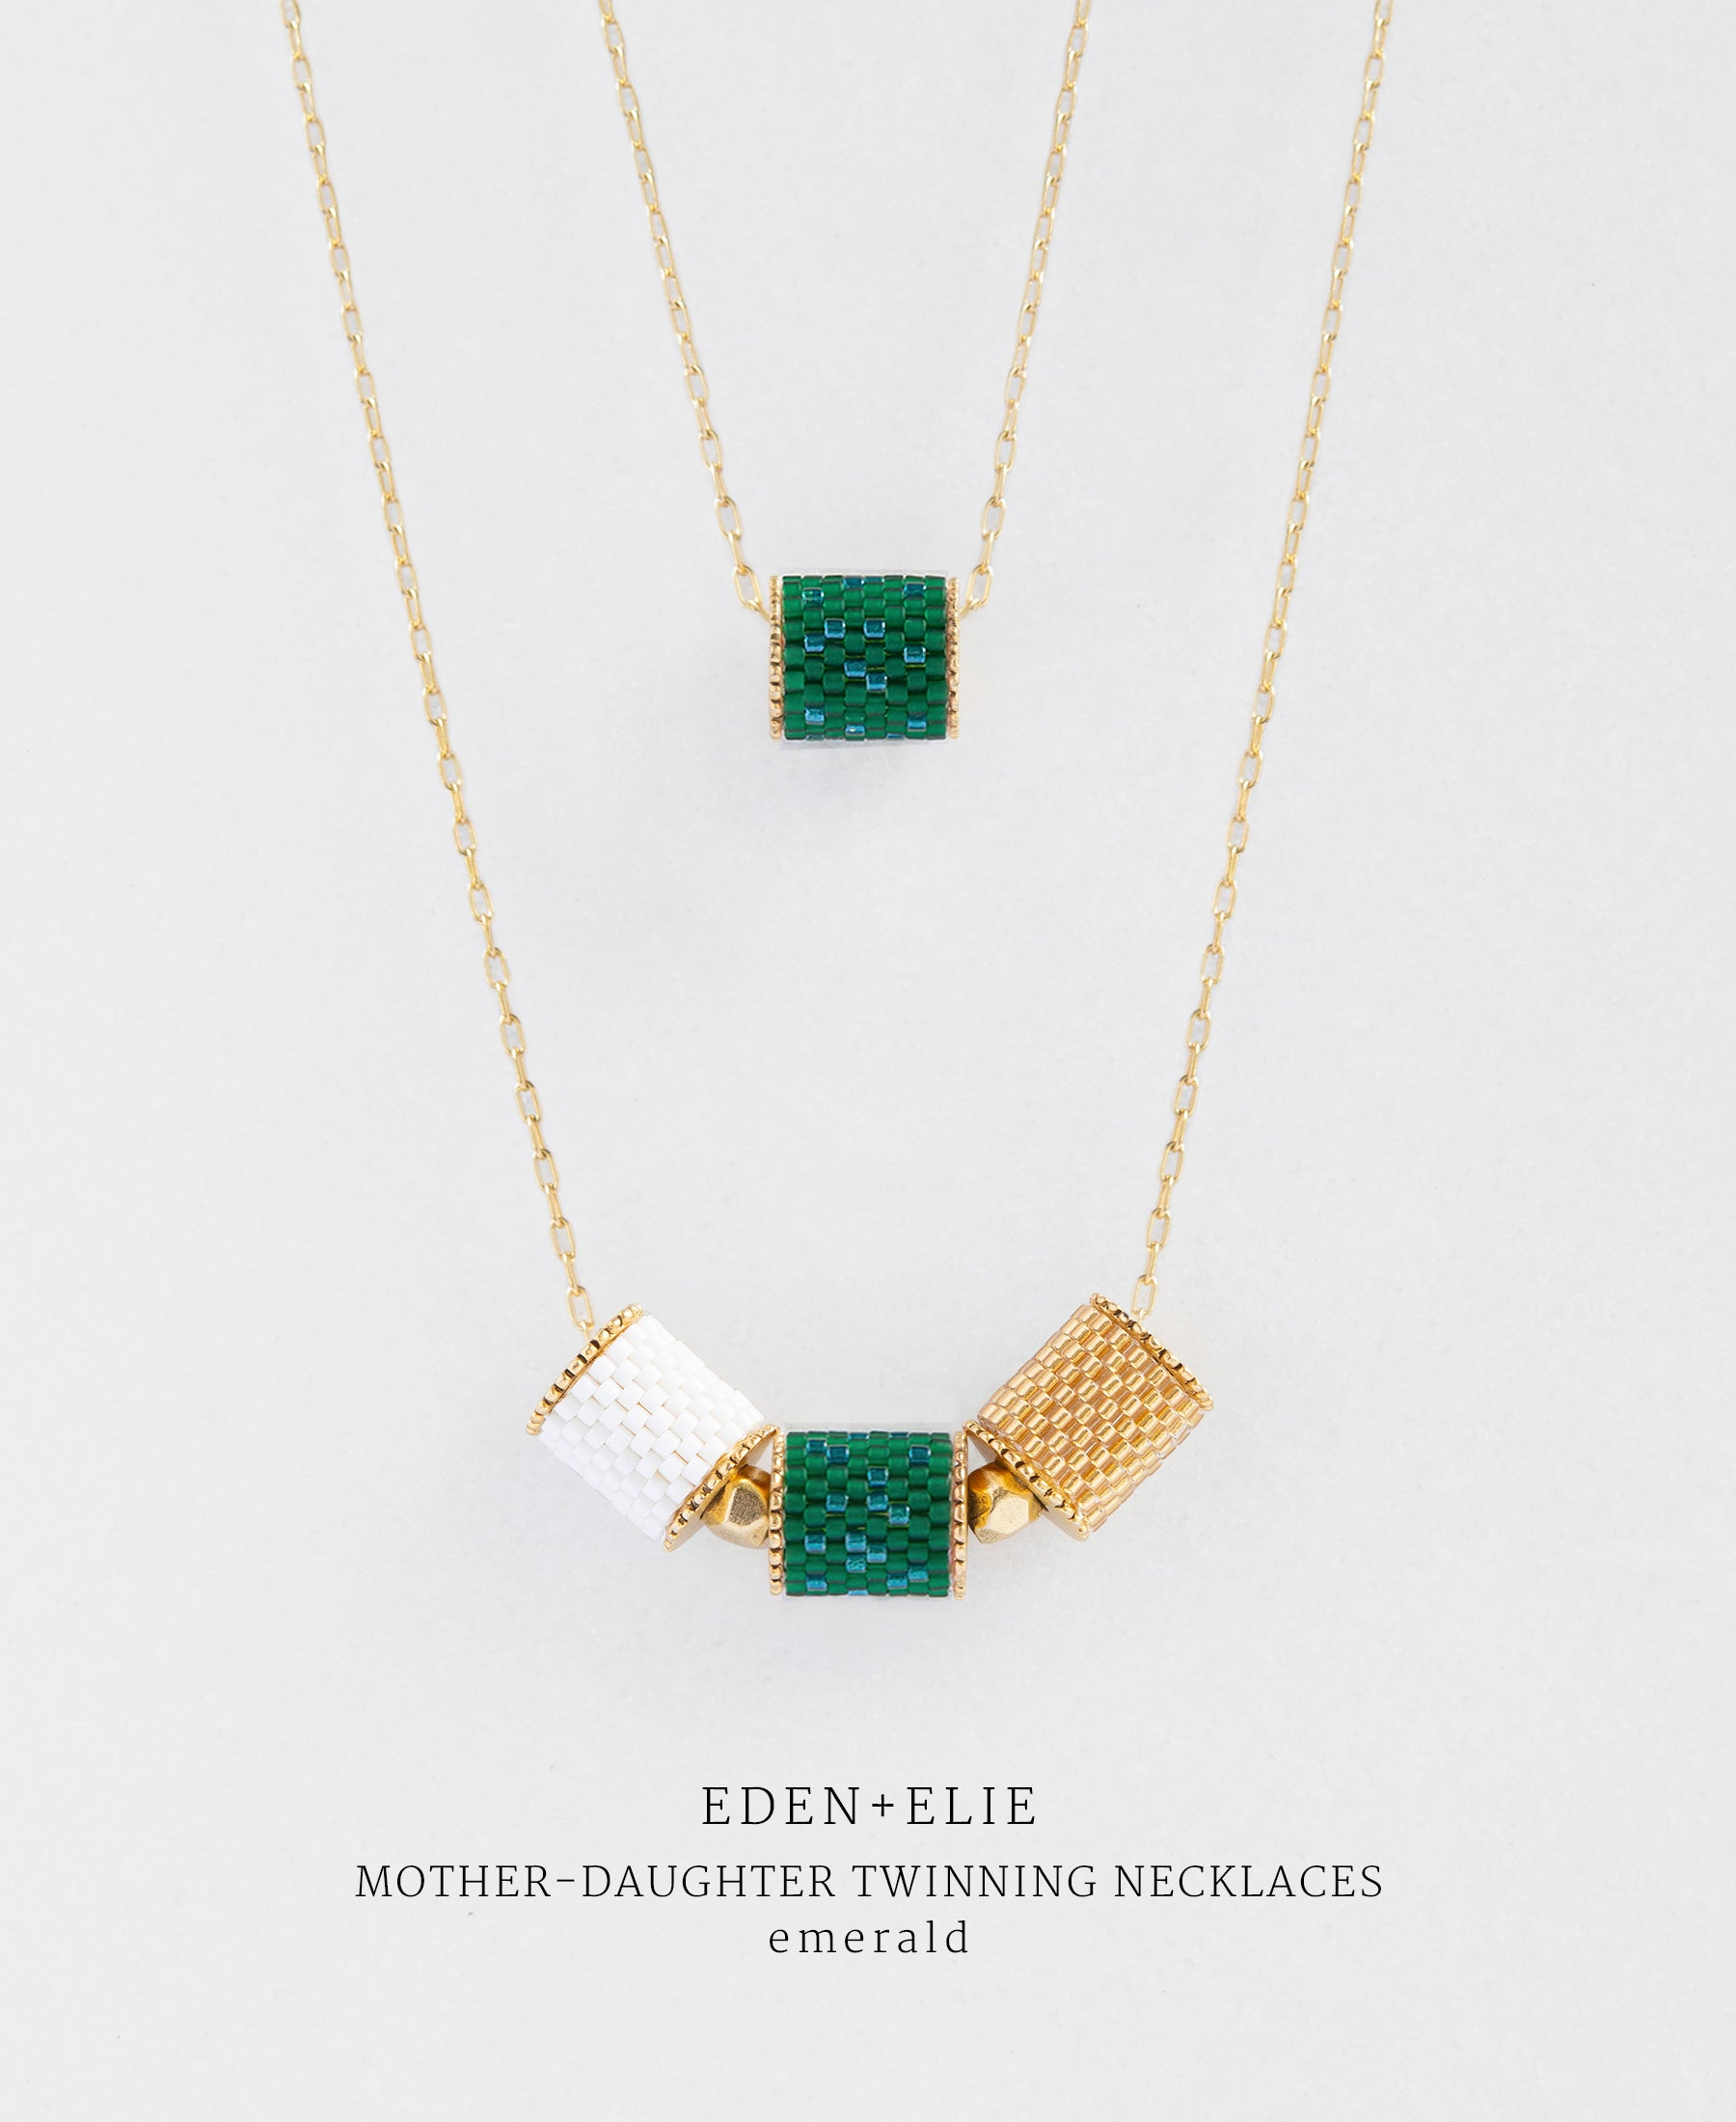 EDEN + ELIE Mother-Daughter twinning necklaces set - emerald green